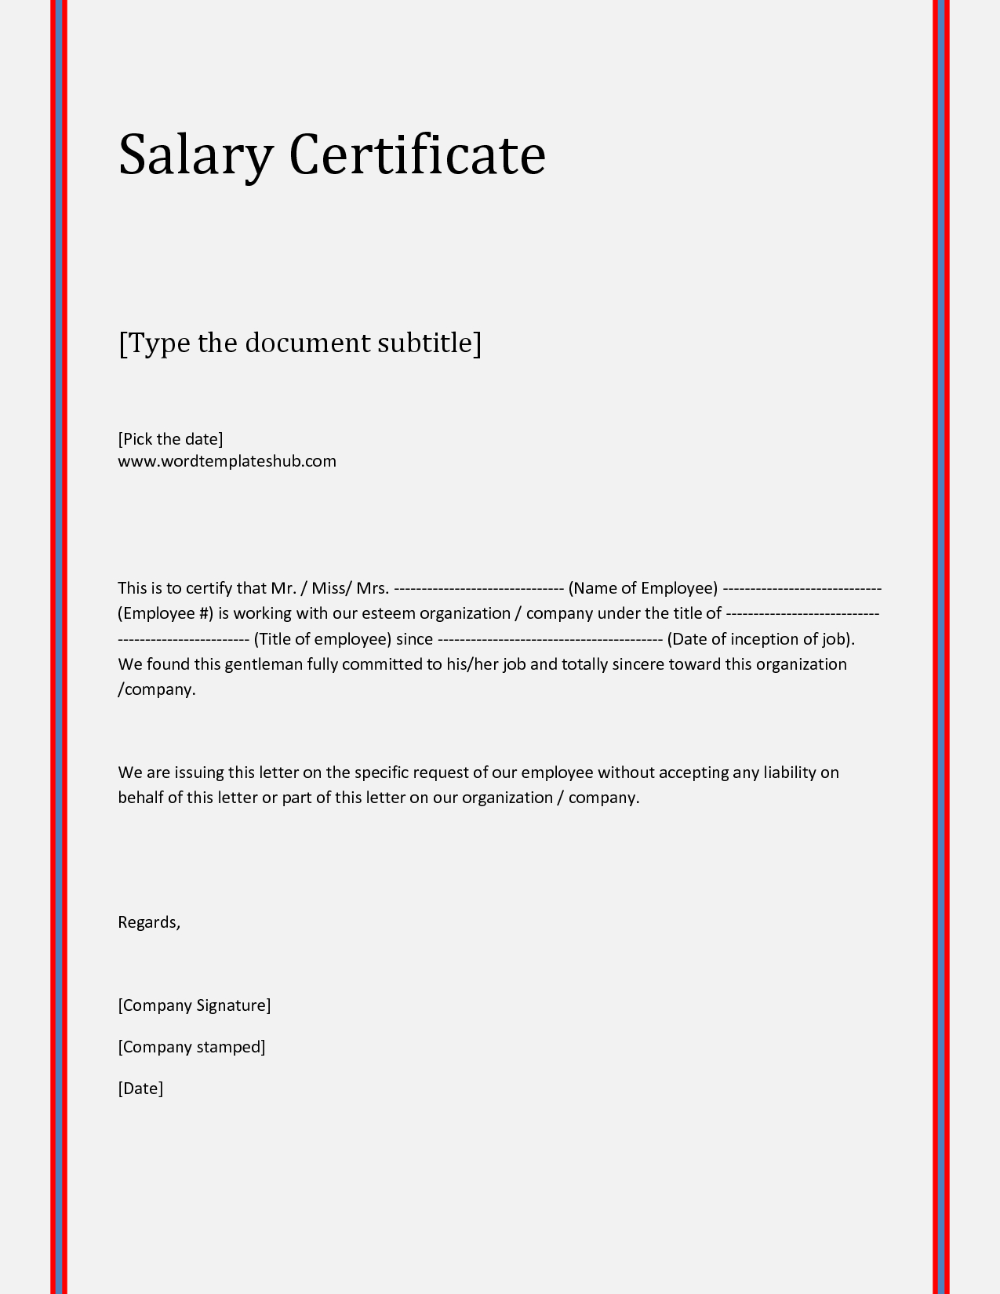 Request Letter For Certificate Employment Nurses Cover